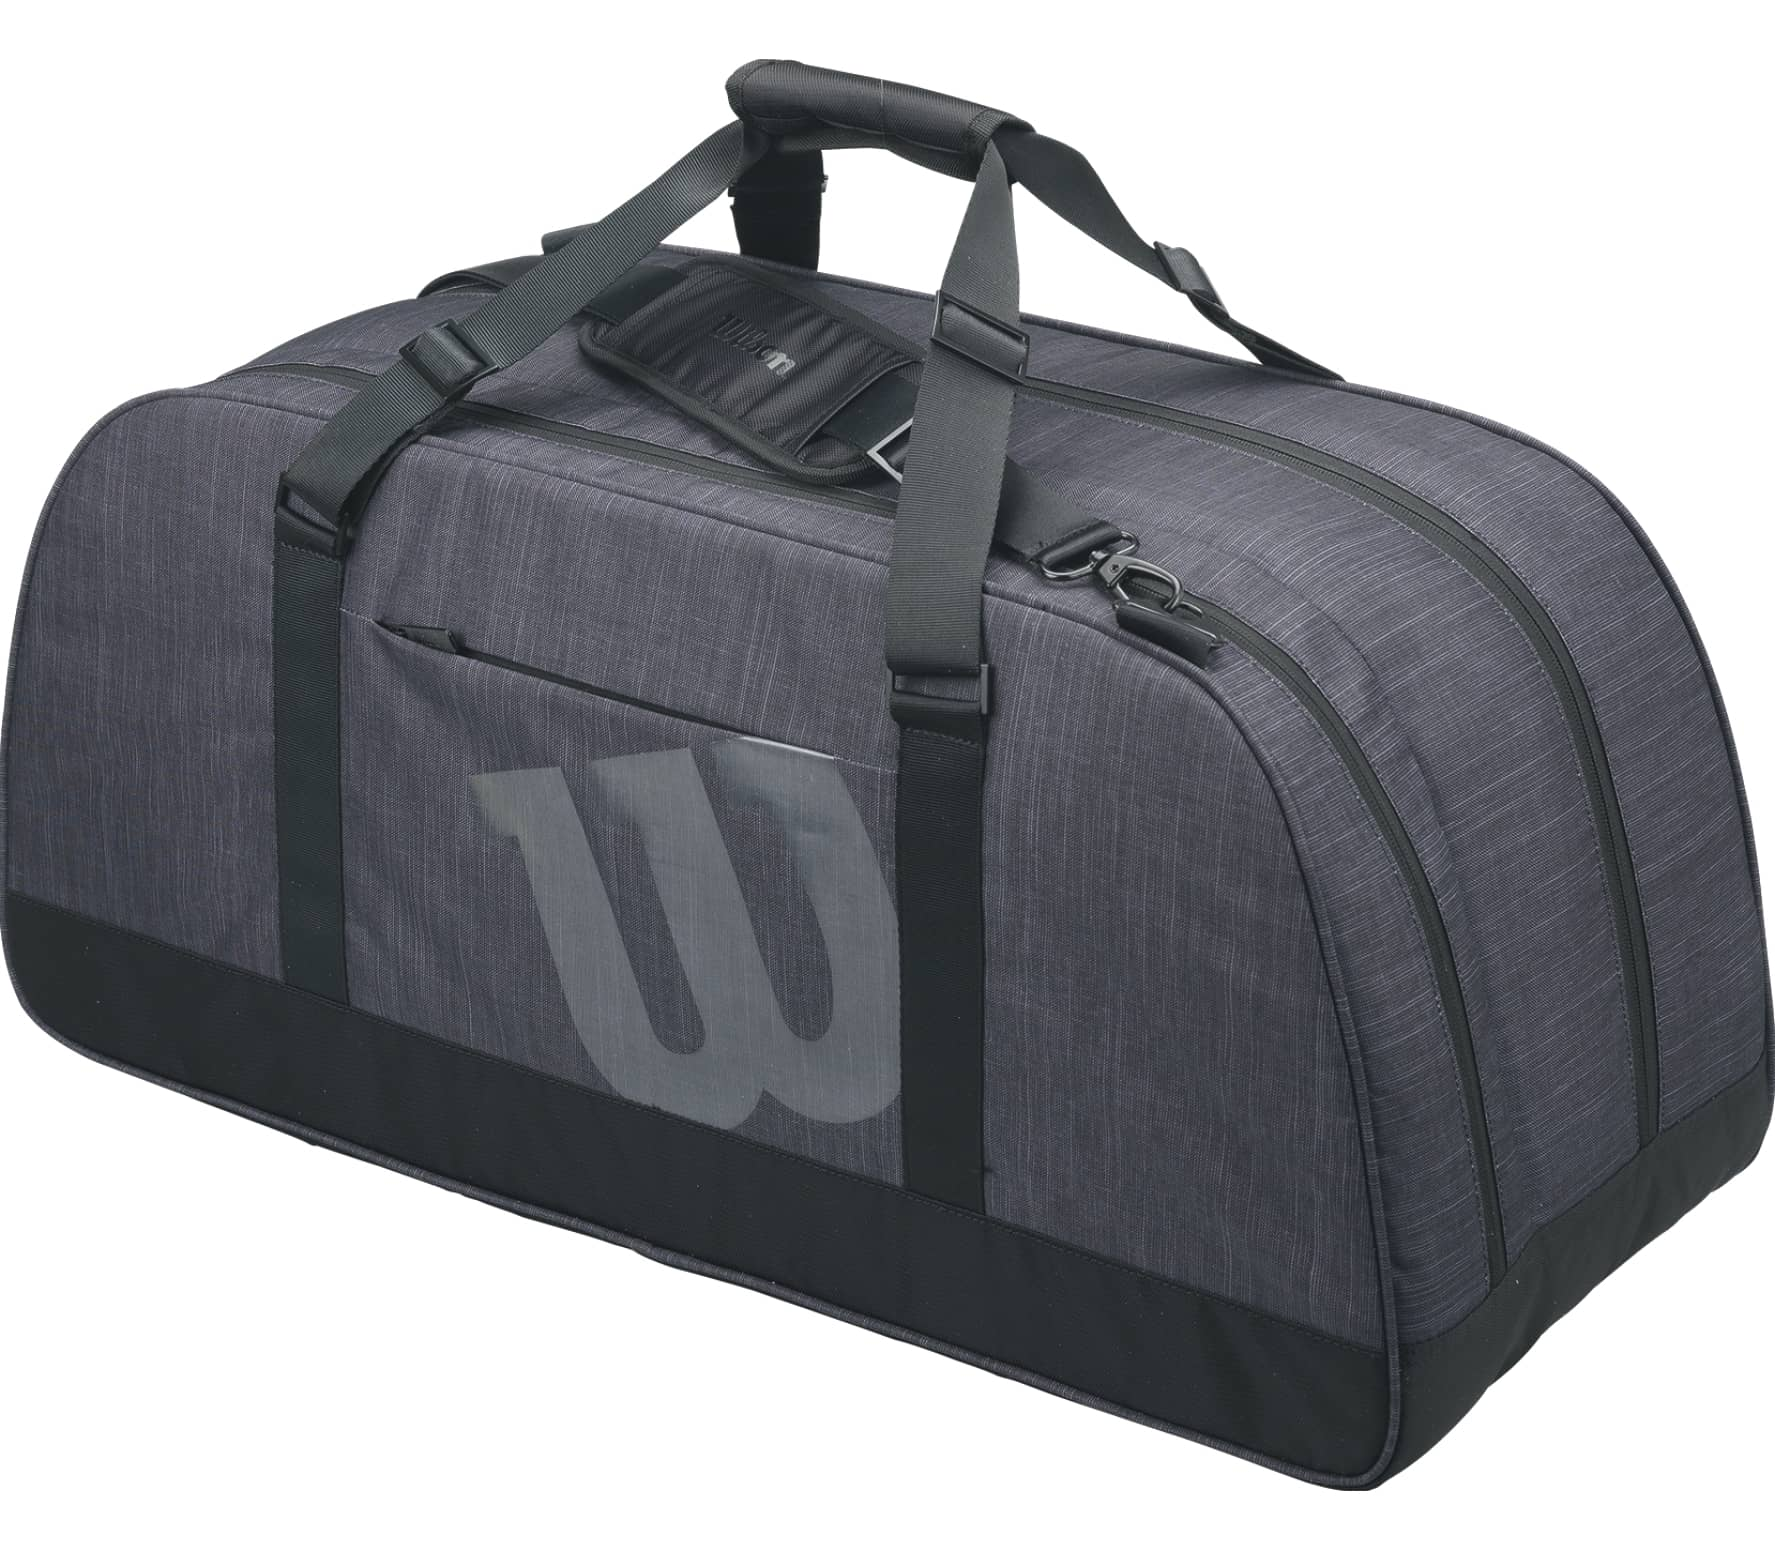 7b511bf3aa Wilson - Agency duffel bag Large tennis bag (grey) - buy it at the ...